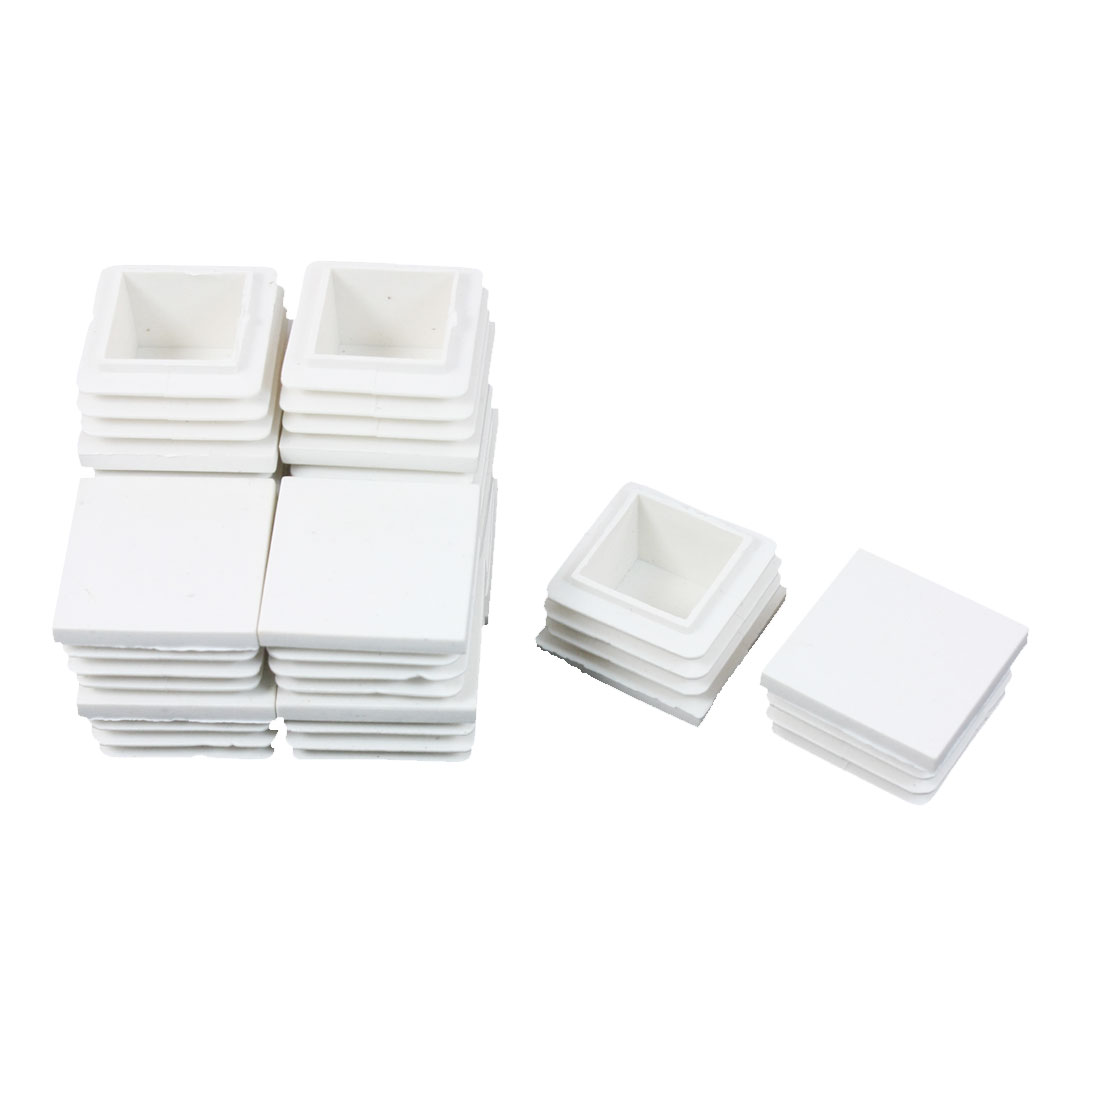 12 Pieces White Plastic Square Blanking End Caps Tubing Tube Inserts 30mm x 30mm